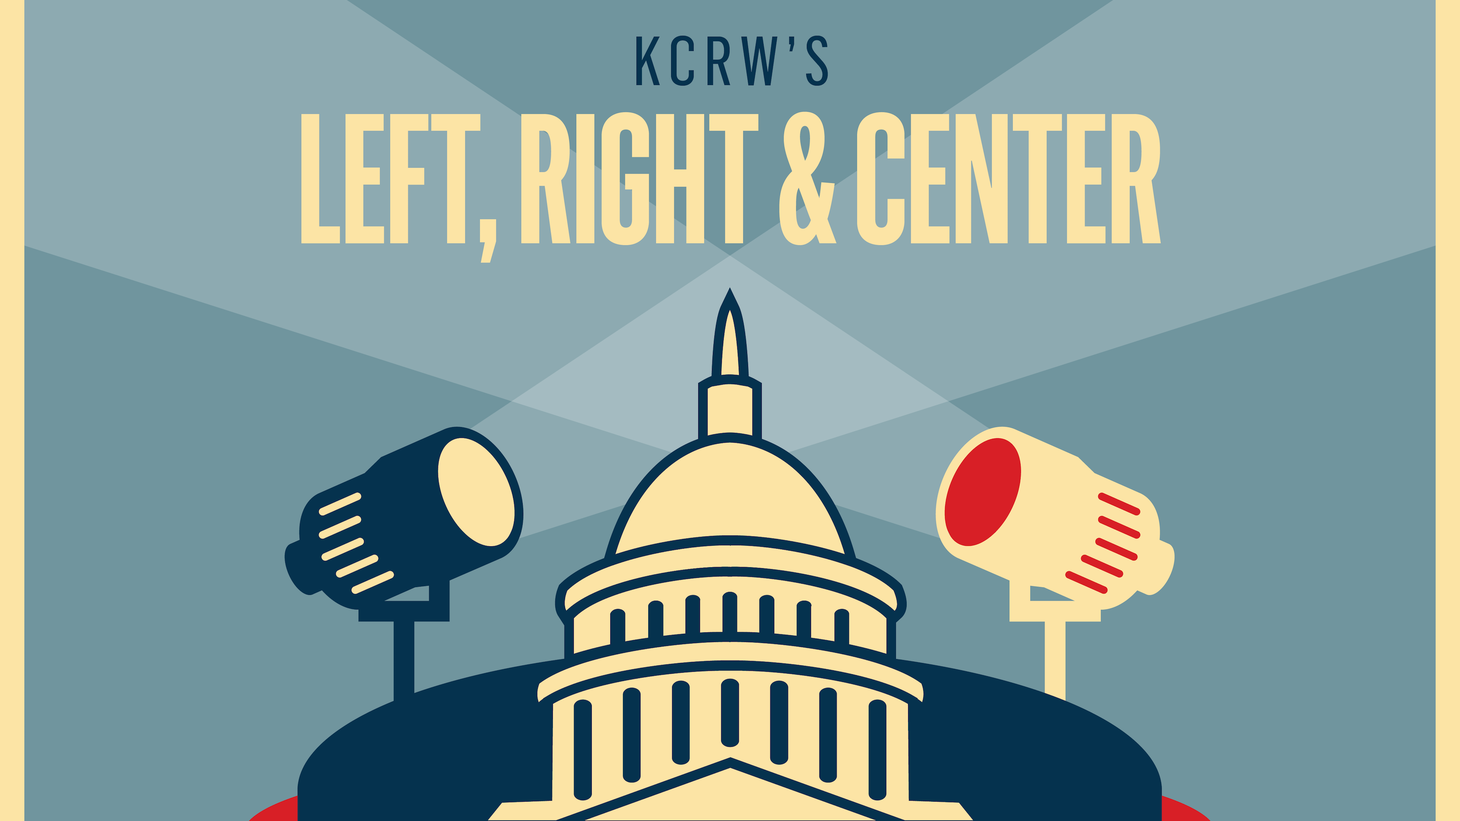 """LEFT, RIGHT AND CENTER WILL NOT BE HEARD THIS EVENING. INSTEAD WE PRESENT THIS ENCORE EDITION OF """"THE POLITICS OF CULTURE"""". We present an interview by Will Lewis with Presidential historian, MICHAEL  BESCHLOSS. He offers a face-to-face encounter with Lyndon Baines Johnson, who still has the power to surprise. Hear LBJ in his own words, in text and on tape, as Beschloss covers a crucial year in his administration in his new book, REACHING FOR GLORY: Lyndon Johnson's Secret White House Tapes. This broadcast originally aired on November 21st this year."""